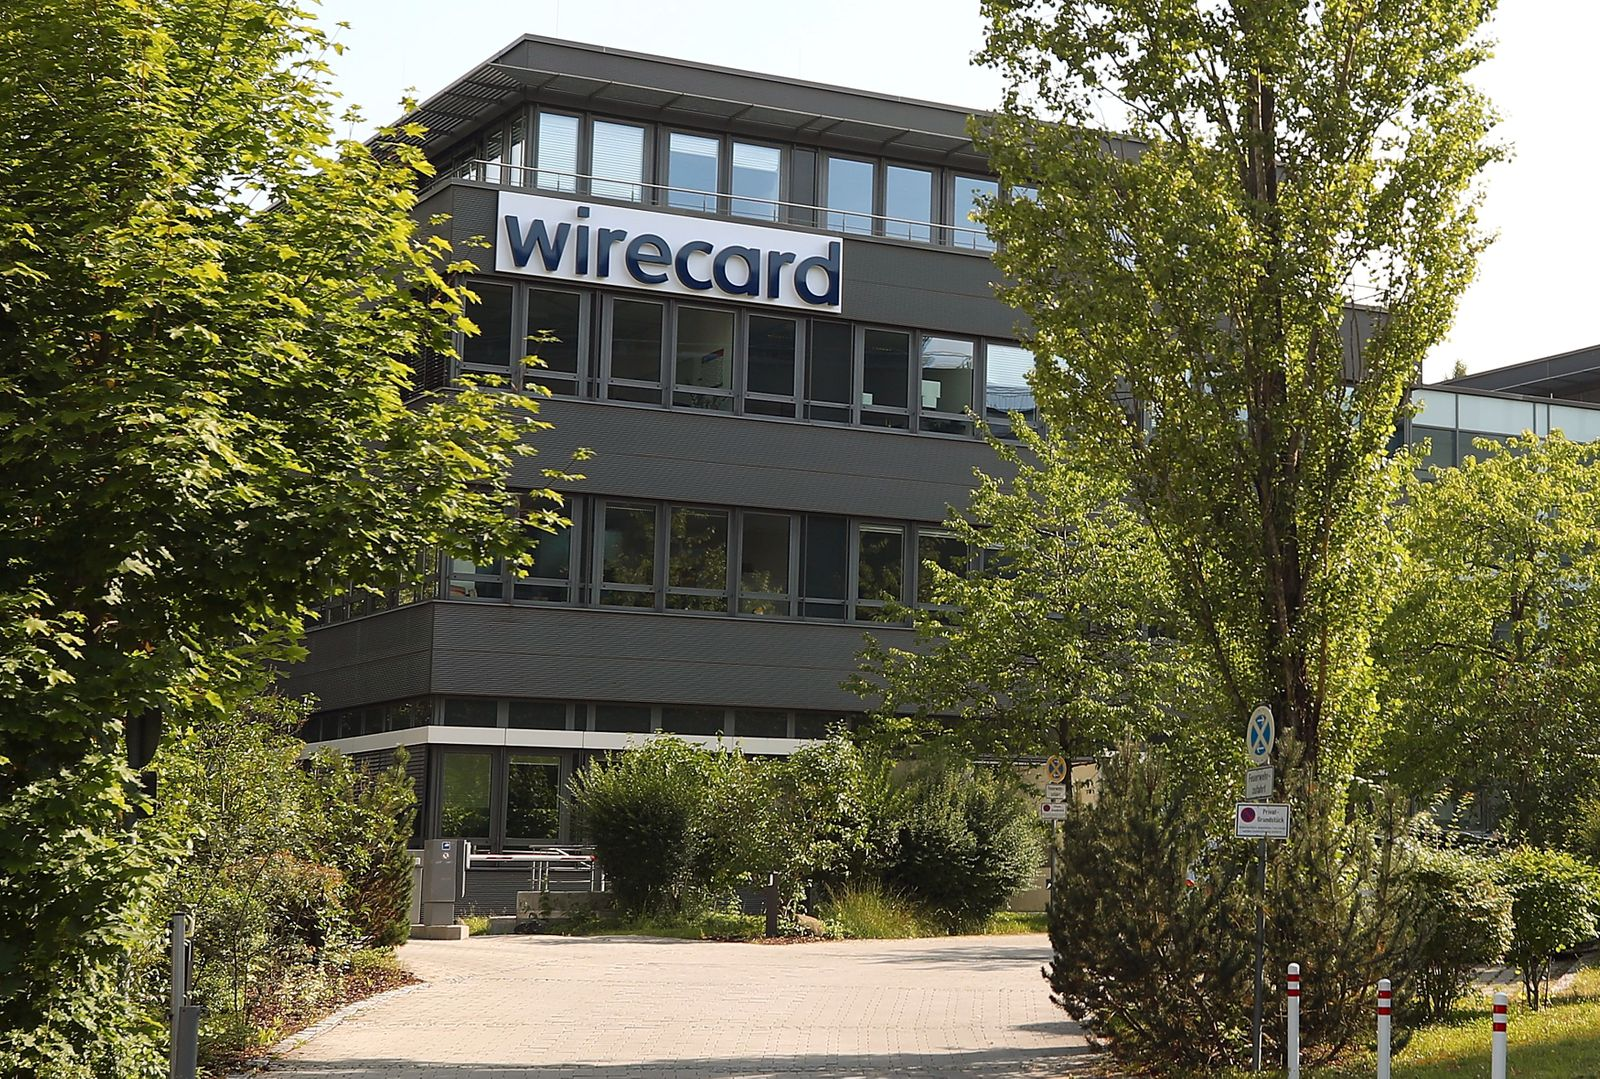 The headquarters of Wirecard AG, an independent provider of outsourcing and white label solutions for electronic payment transactions is seen in Aschheim